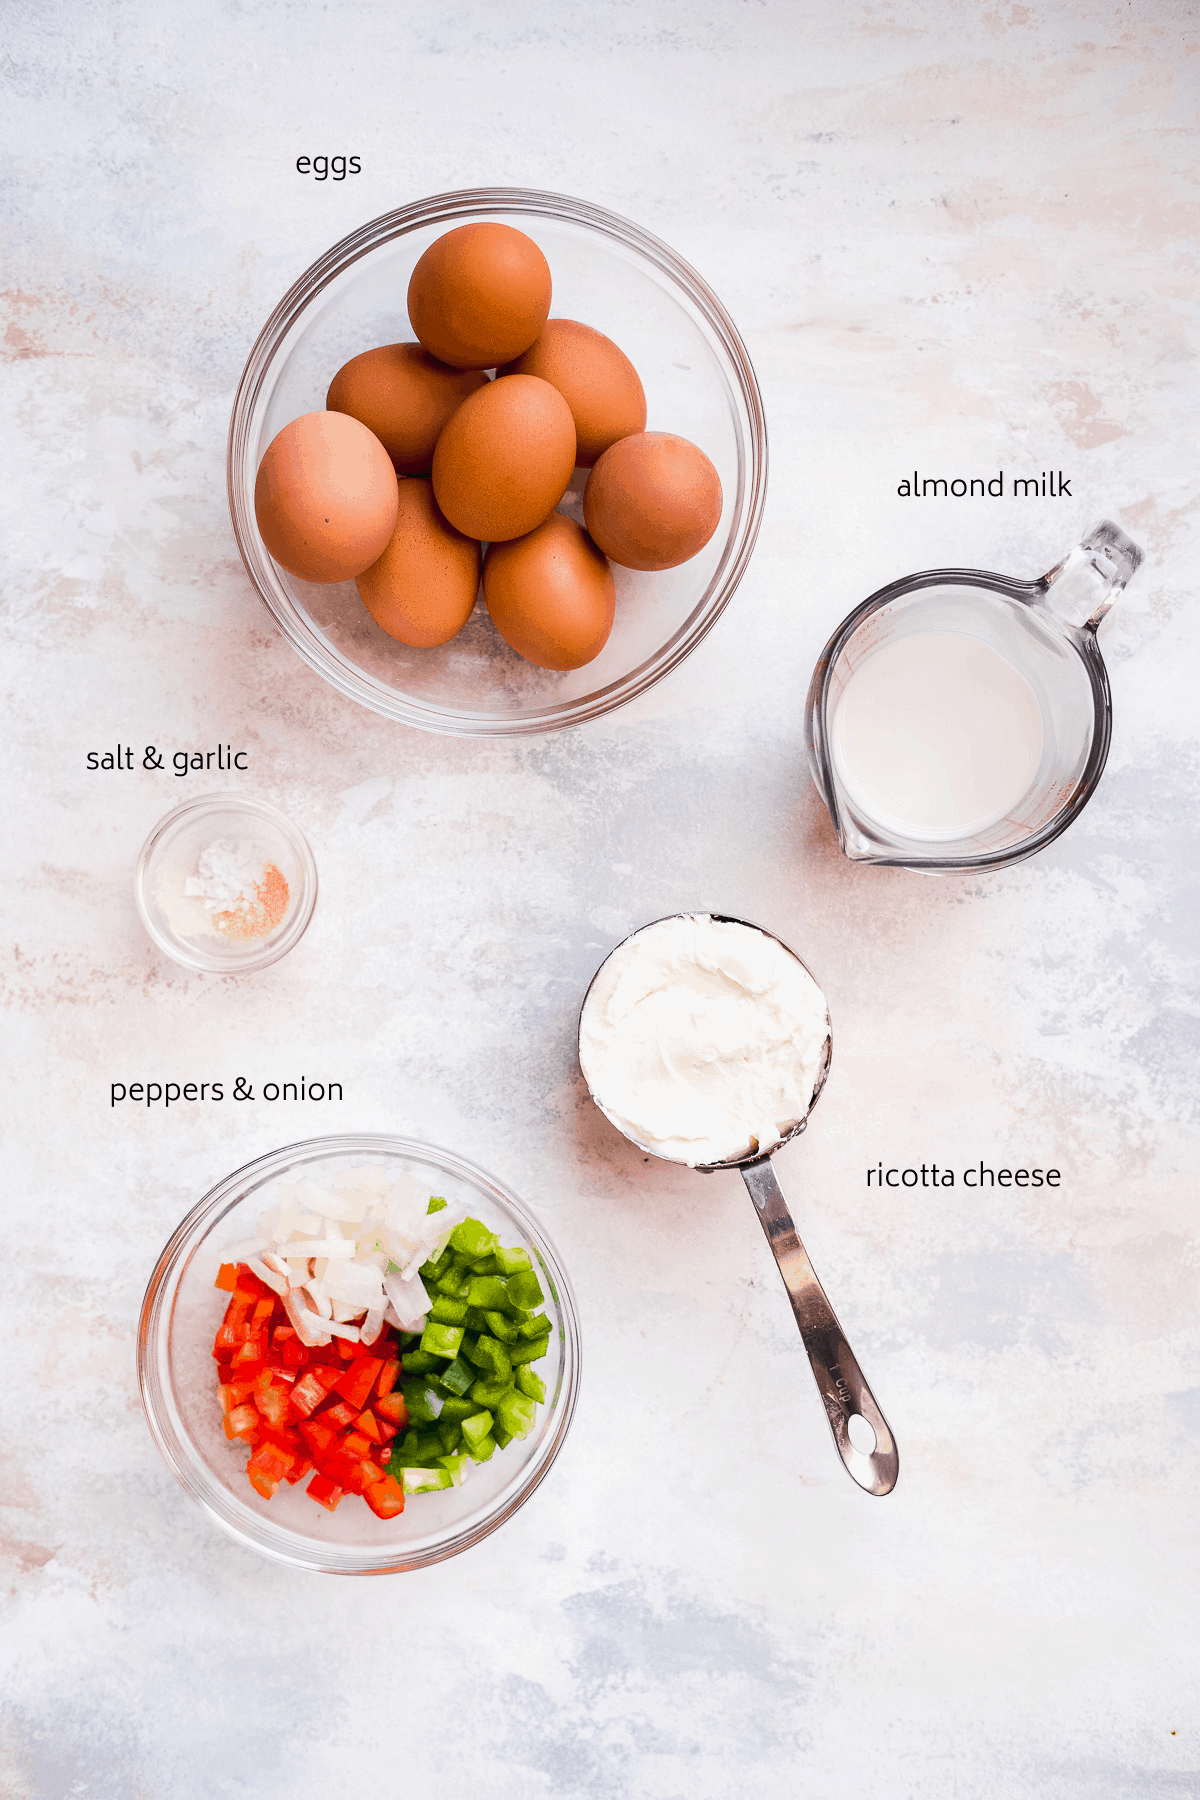 Image of ricotta egg bite ingredients on a surface with black labels.